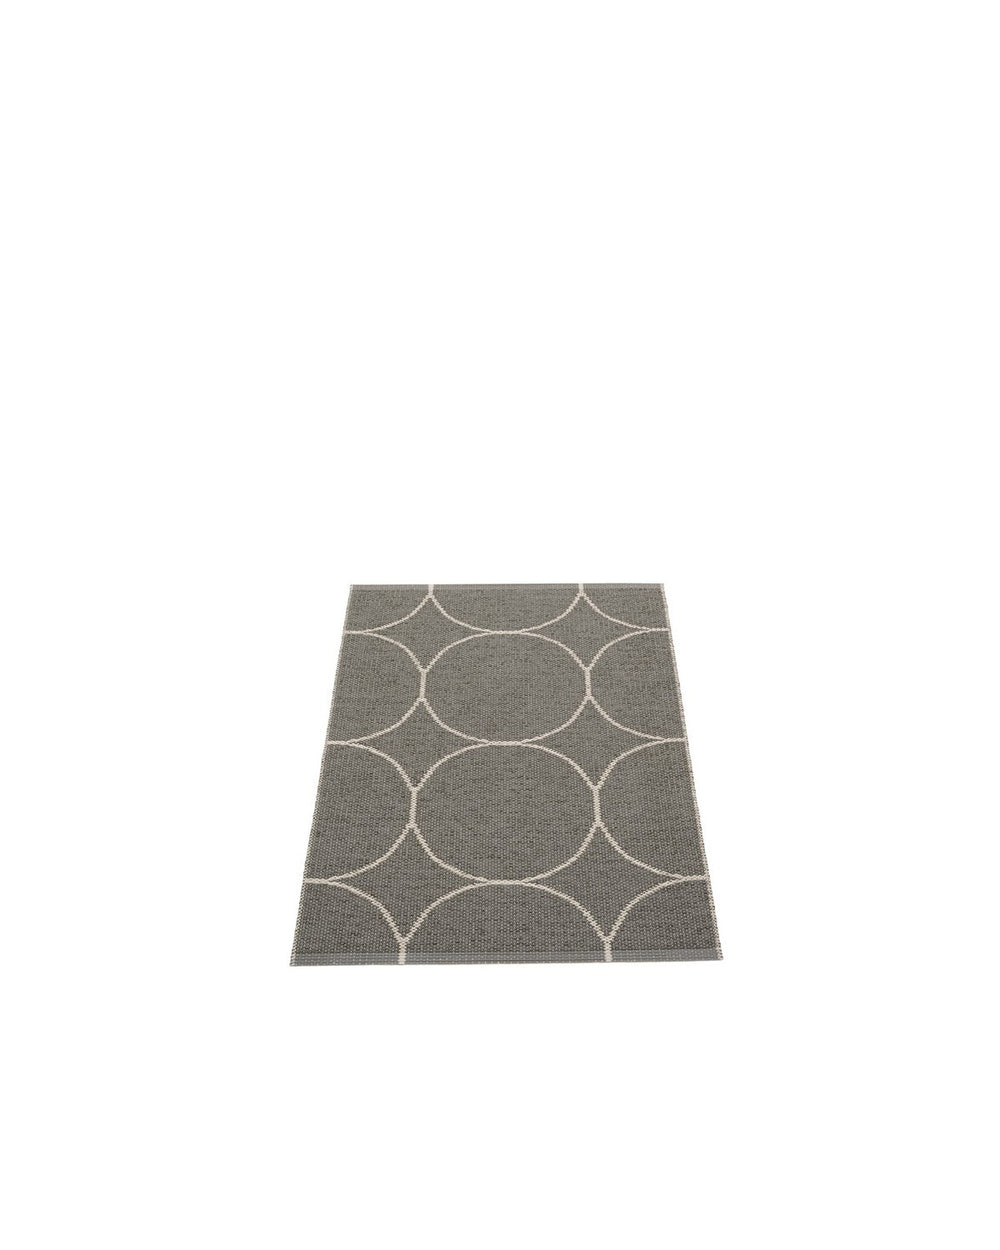 Rug Boo Charcoal & Linen by Pappelina